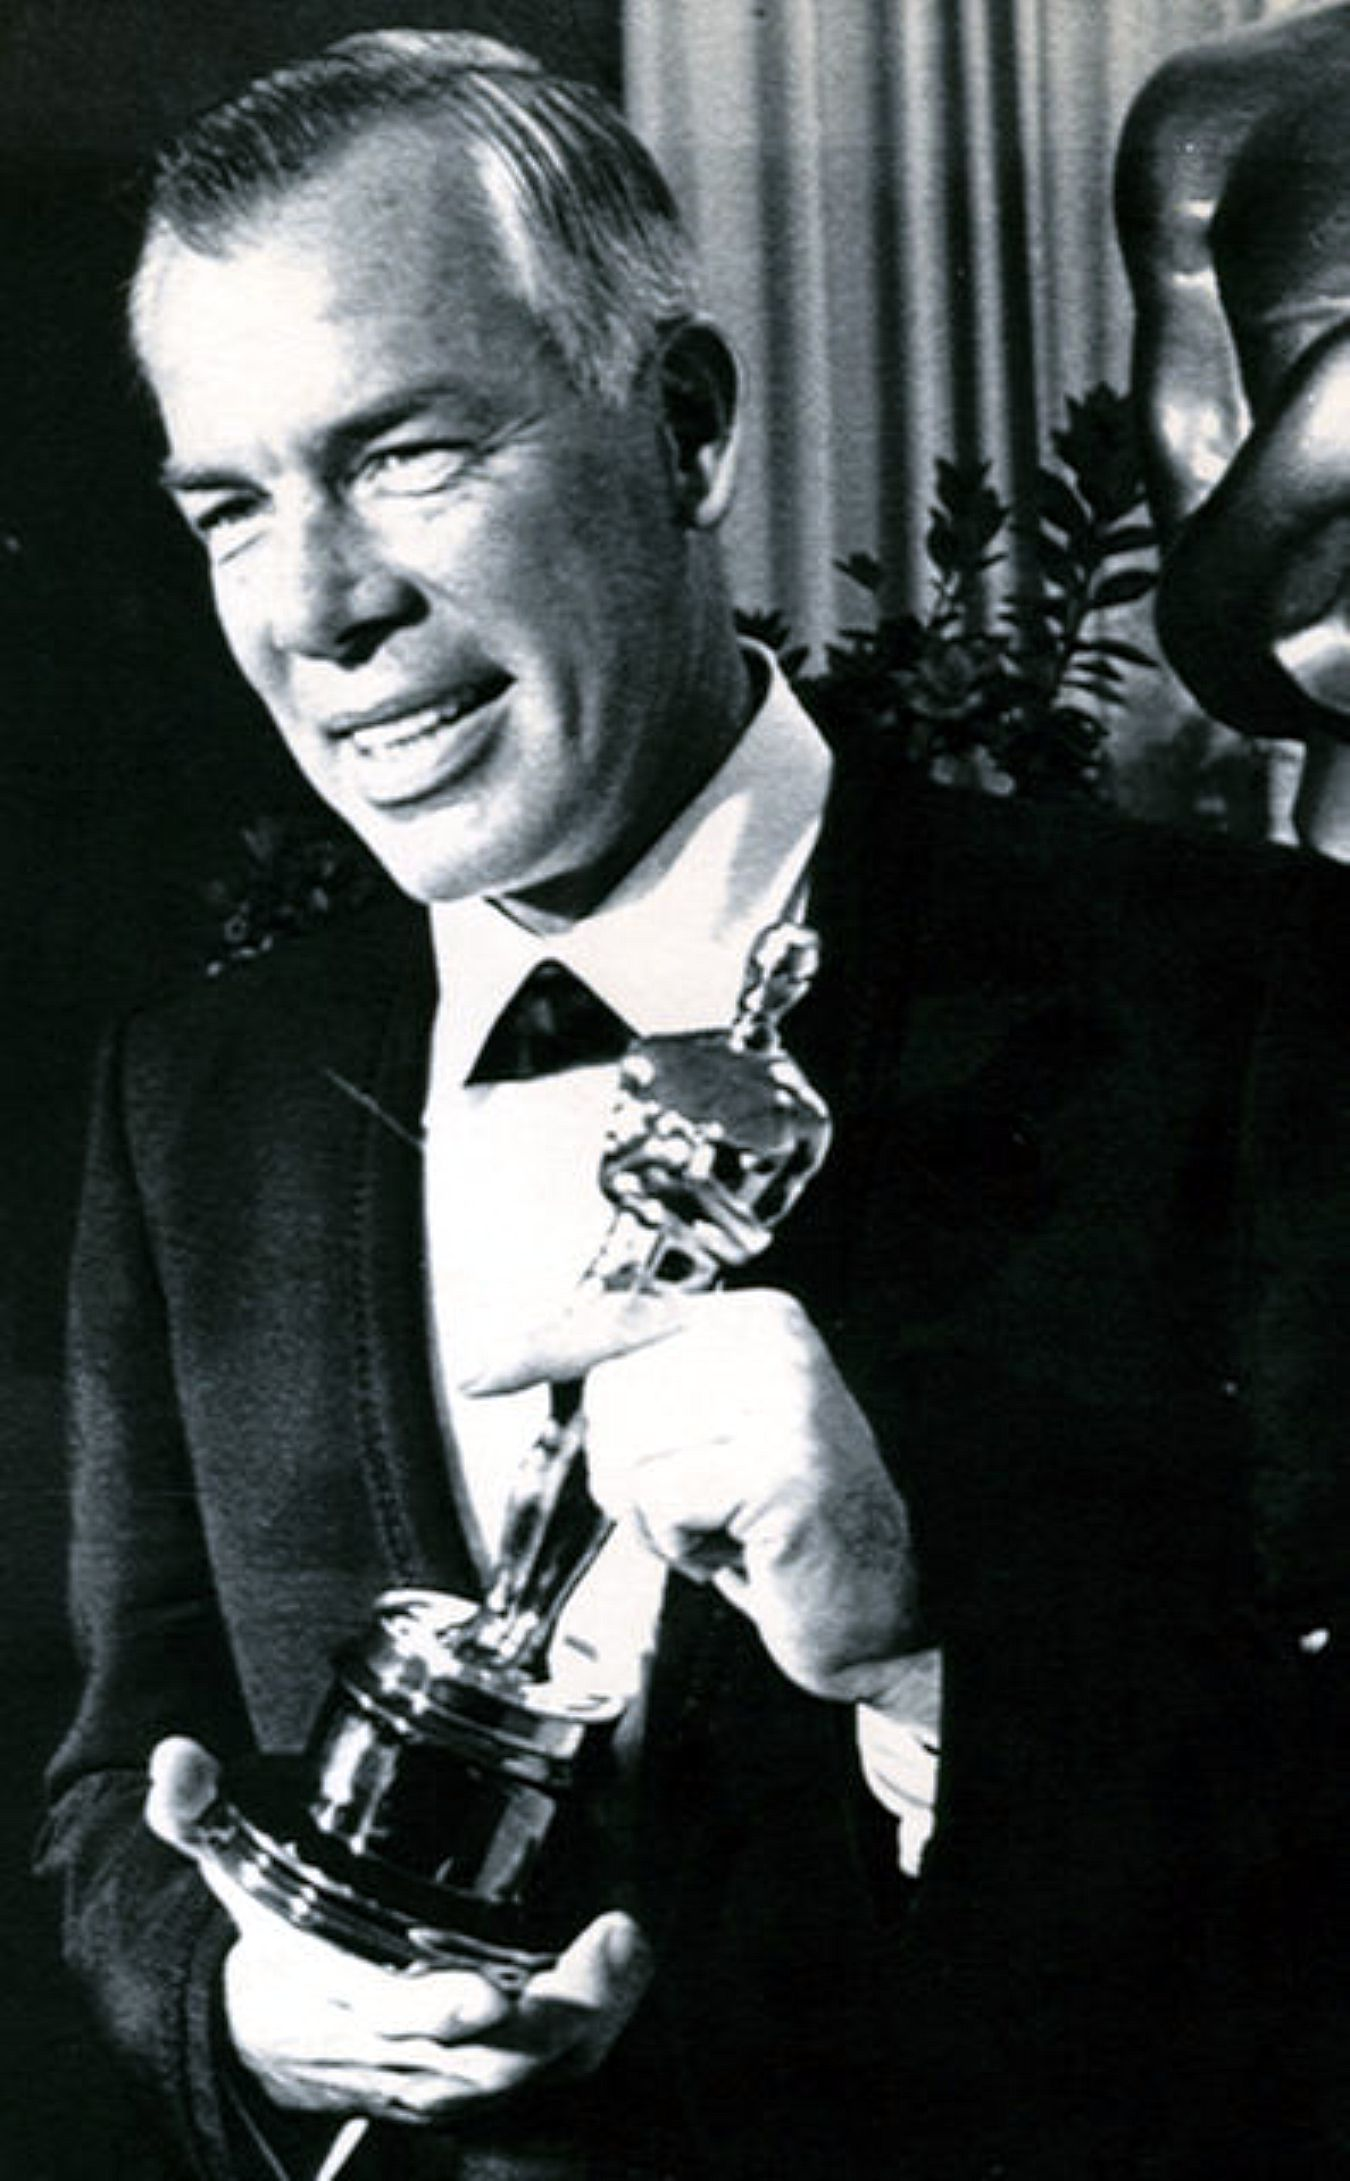 lee marvin sonslee marvin wandering star, lee marvin i was born under a wandering star remastered lyrics, lee marvin and clint eastwood movie, lee marvin filmleri, lee marvin betty ebeling, lee marvin vs derek jeter, lee marvin wandering star mp3, lee marvin quotes, lee marvin imdb, lee marvin wandering star lyrics, lee marvin - wand'rin star, lee marvin filmy, lee marvin voice, lee marvin wiki, lee marvin pictures, lee marvin sons, lee marvin death, lee marvin height